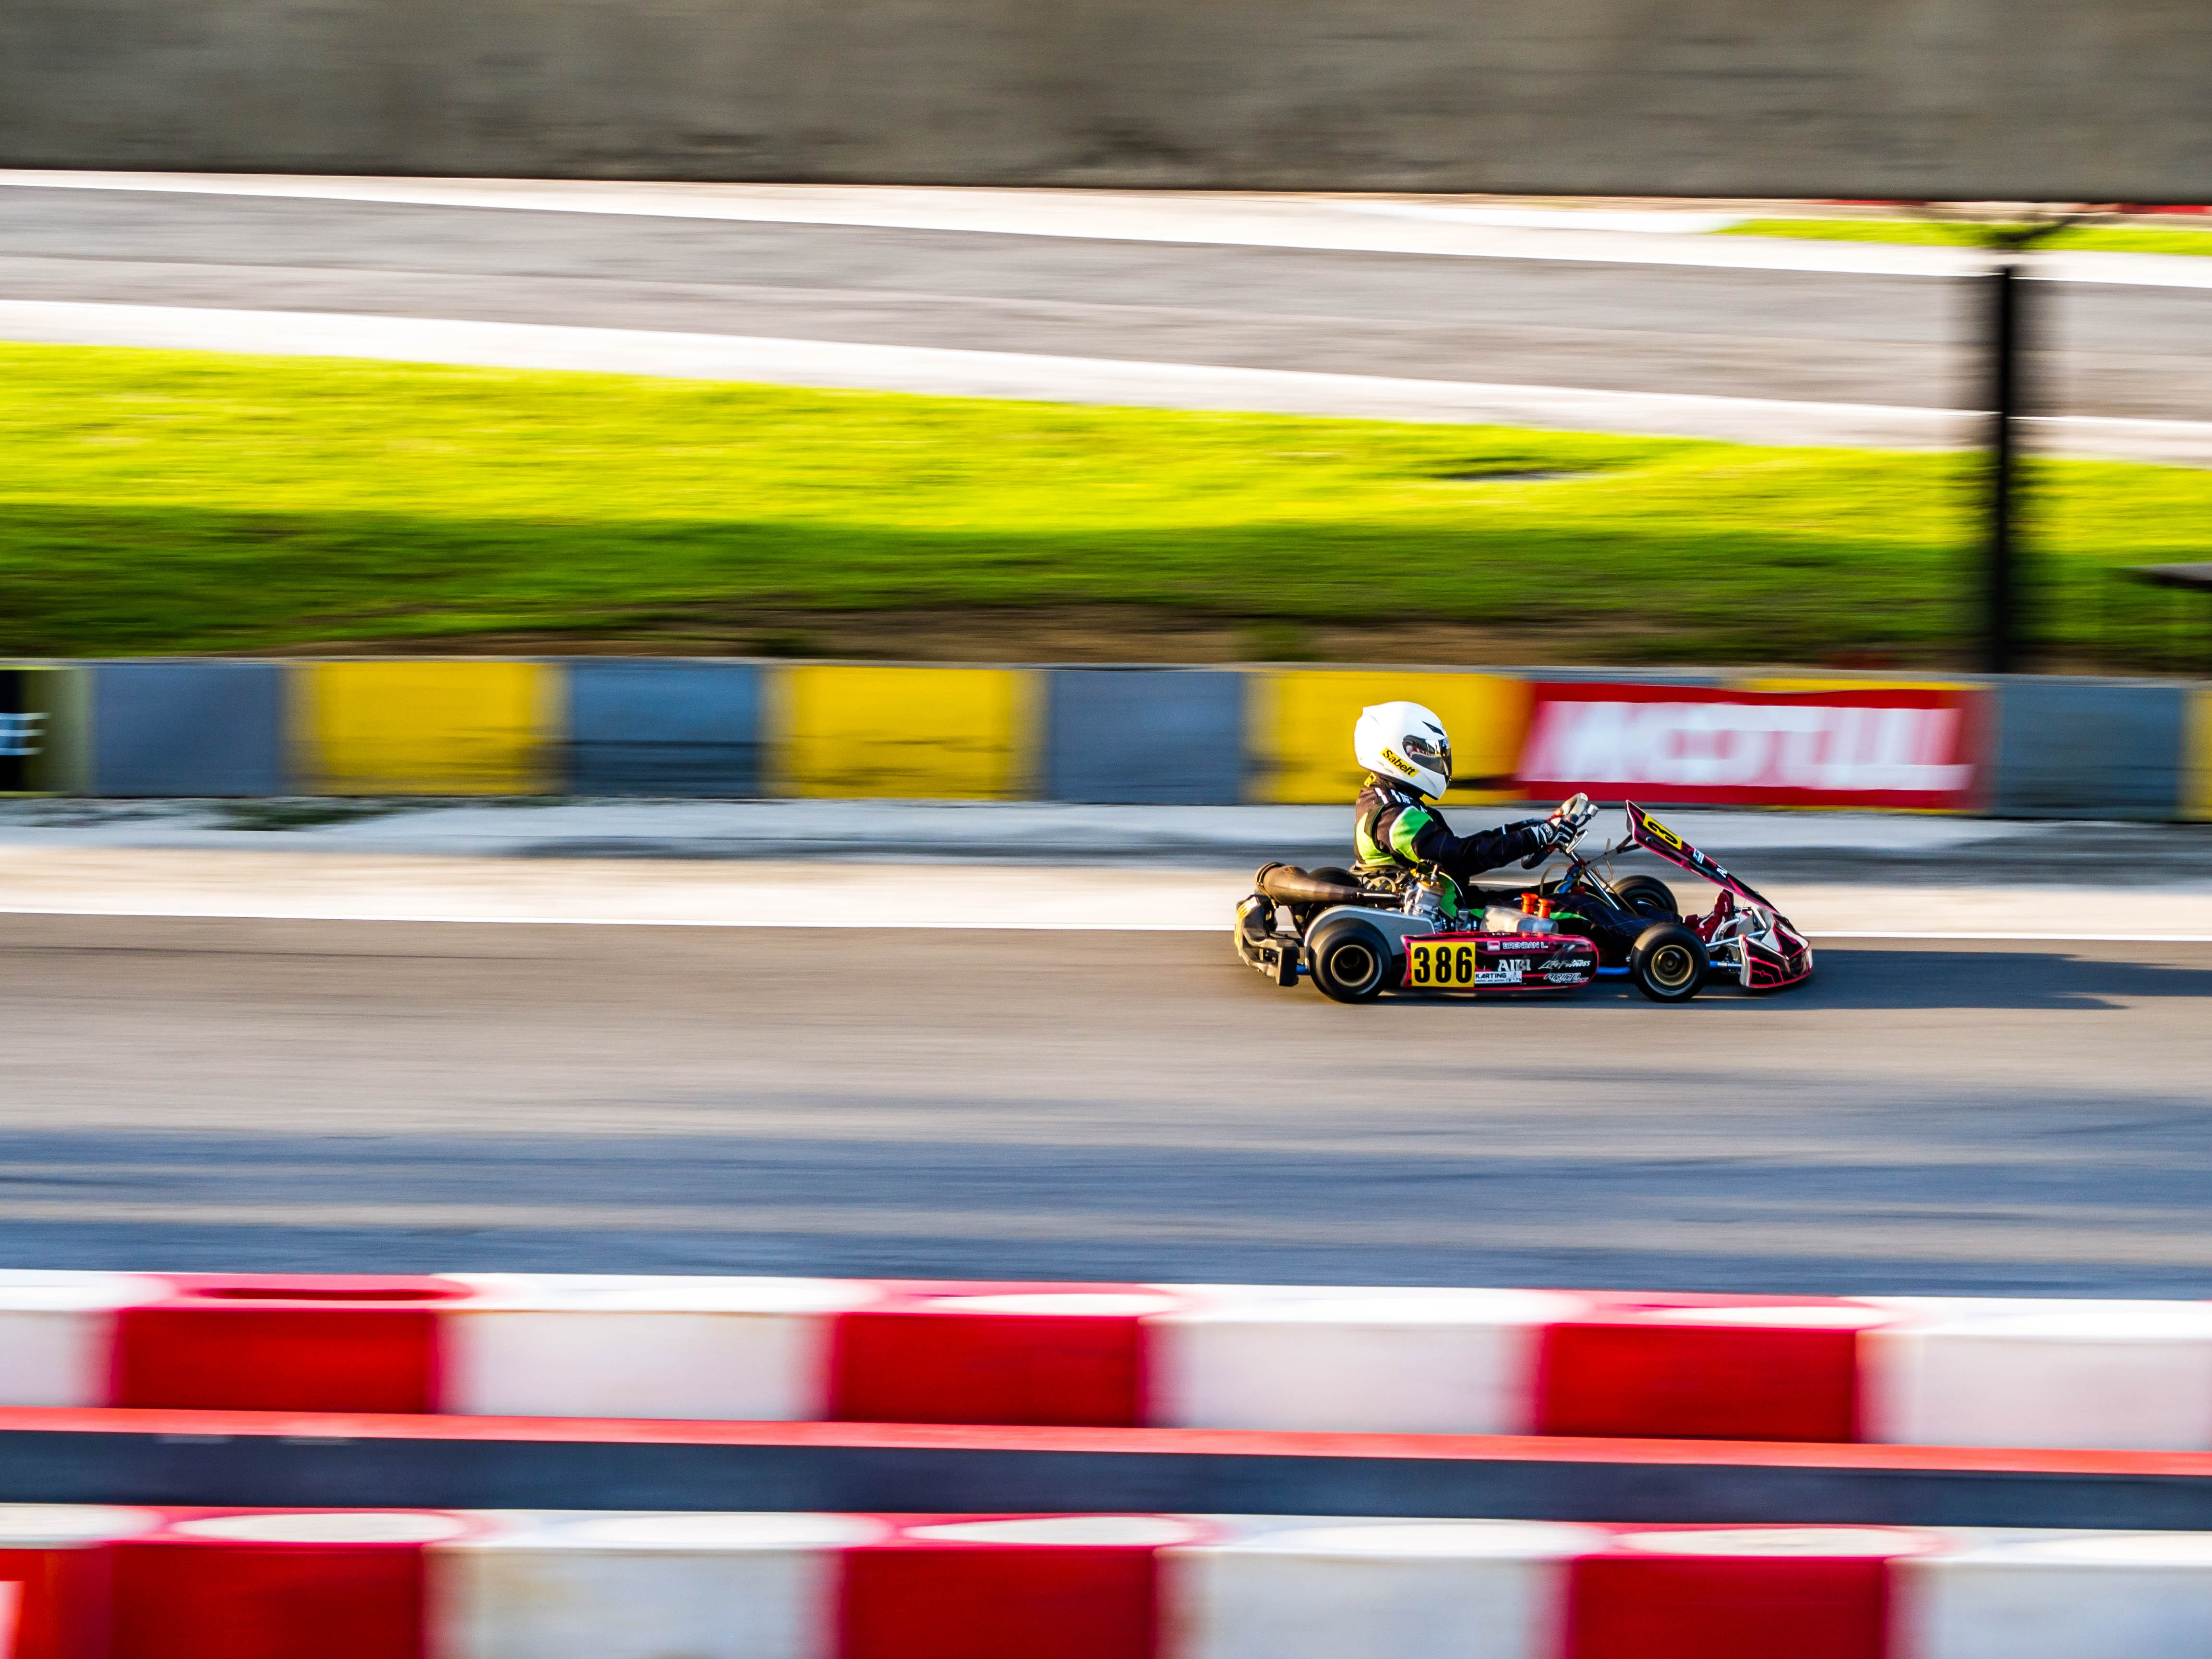 A blurry shot of a person driving a go-kart on race track